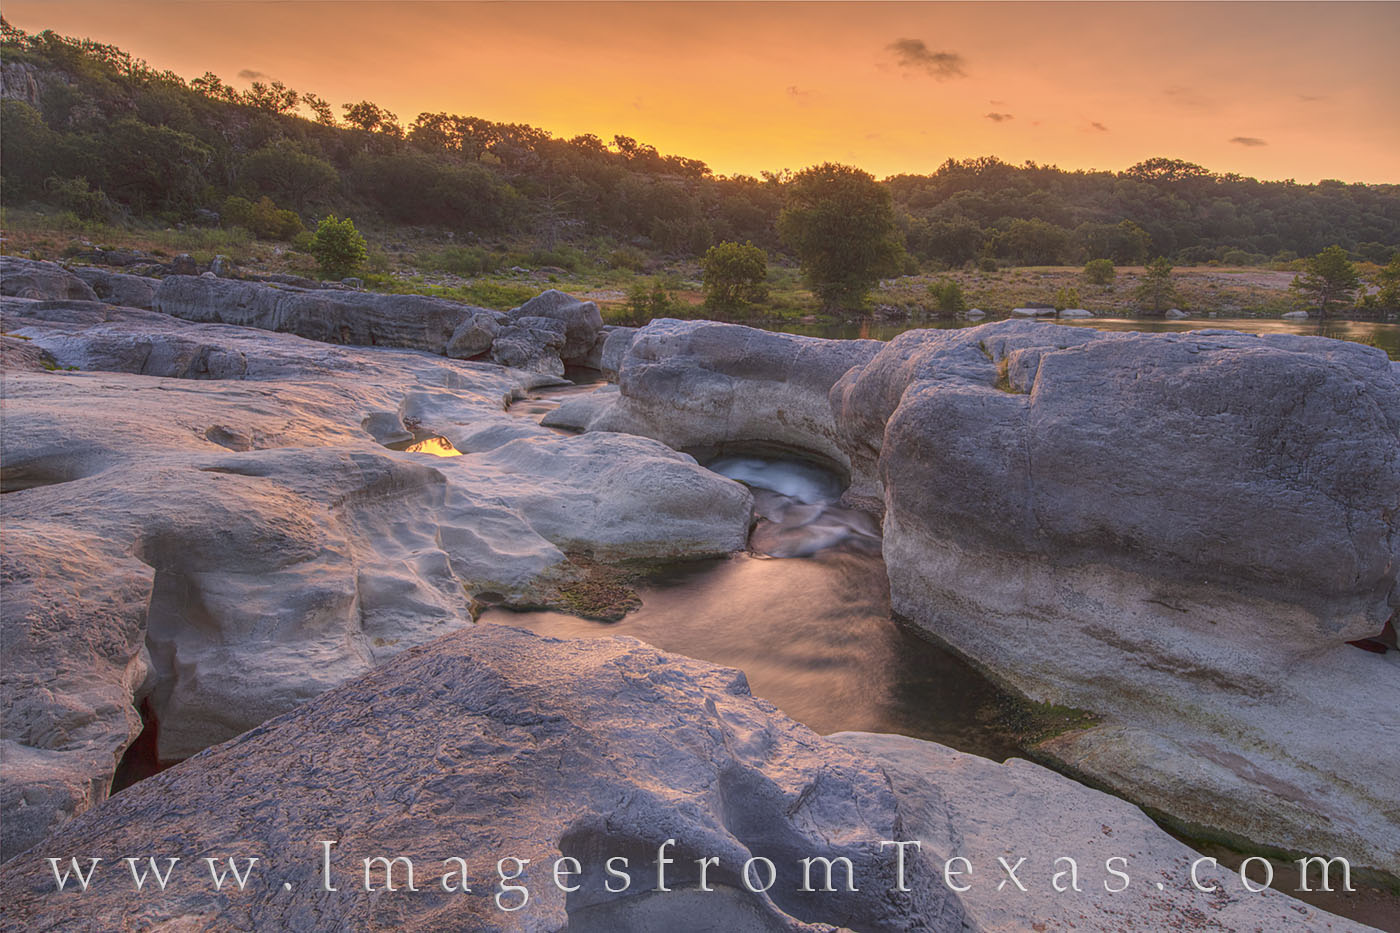 pedernales falls state park, pedernales river, sunrise, water, river, orange, state park, texas hill country, solitude, peace, photo